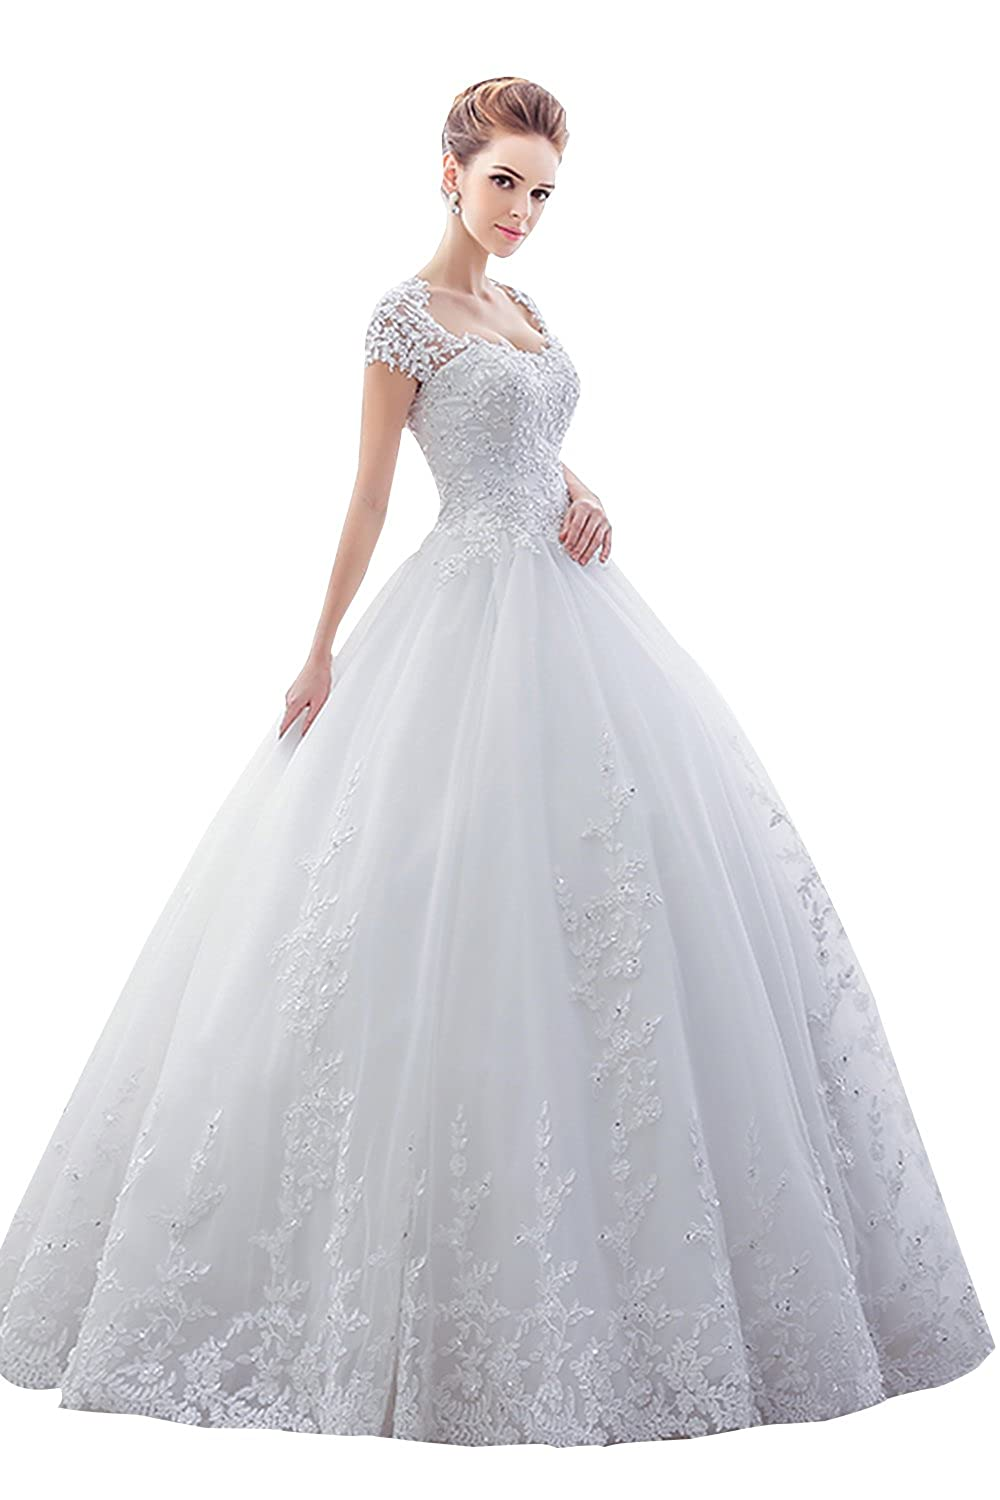 2f290ac722c Specifics  Sweetheart neckline.Floor length dresss. Lace appliques Beads.Silhouette  Ball gown.Lace up wedding bridal gown